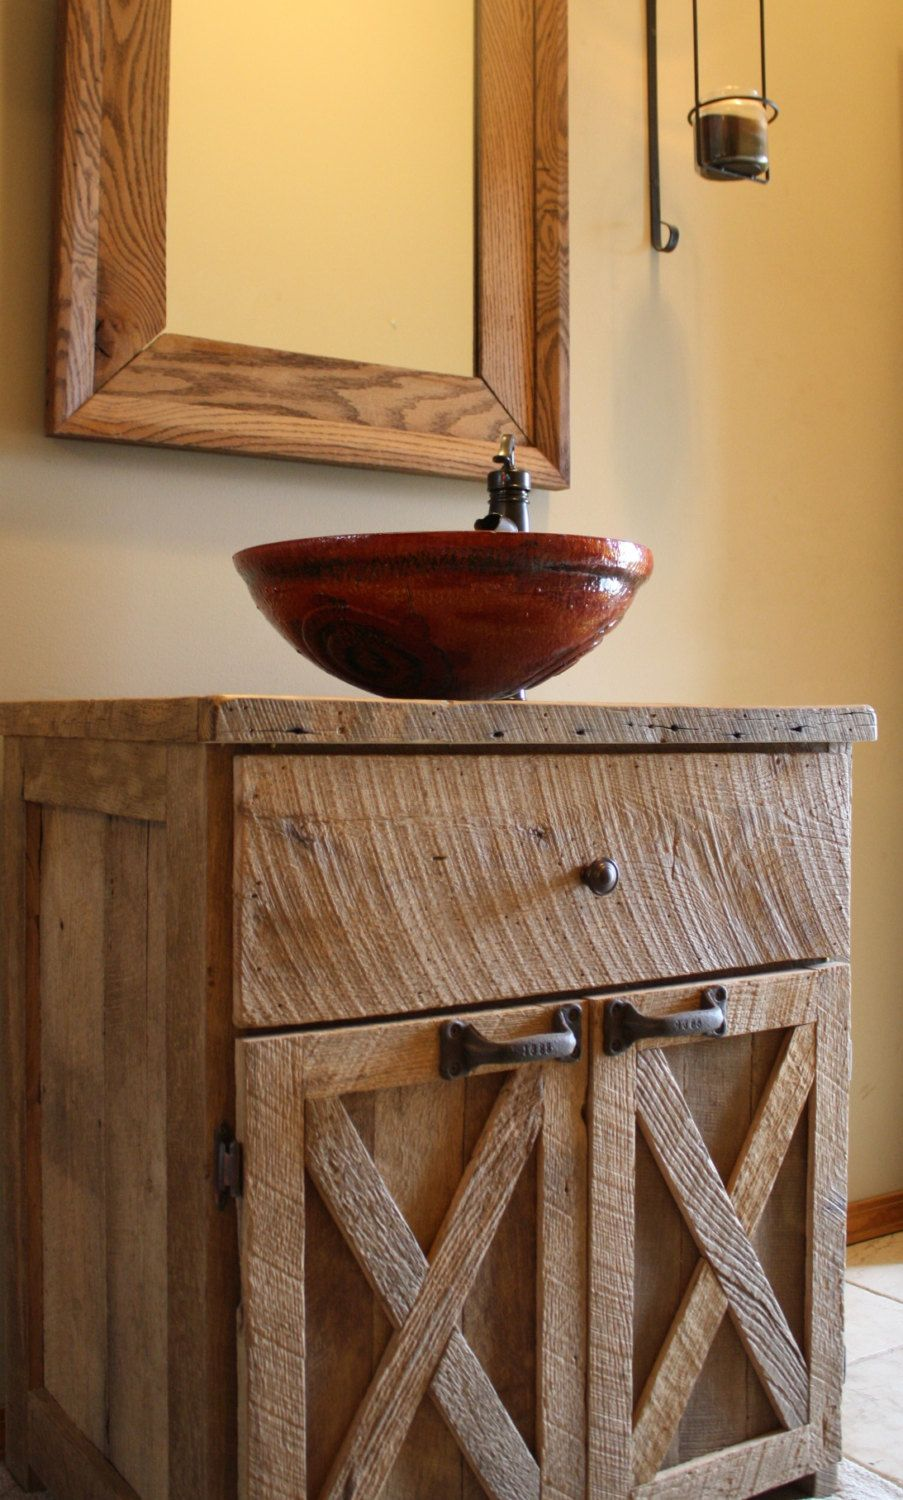 Rustic Bathroom Vanities And Sinks Kandices First Of 2 Listings For Custom Rustic Barn Wood Vanity